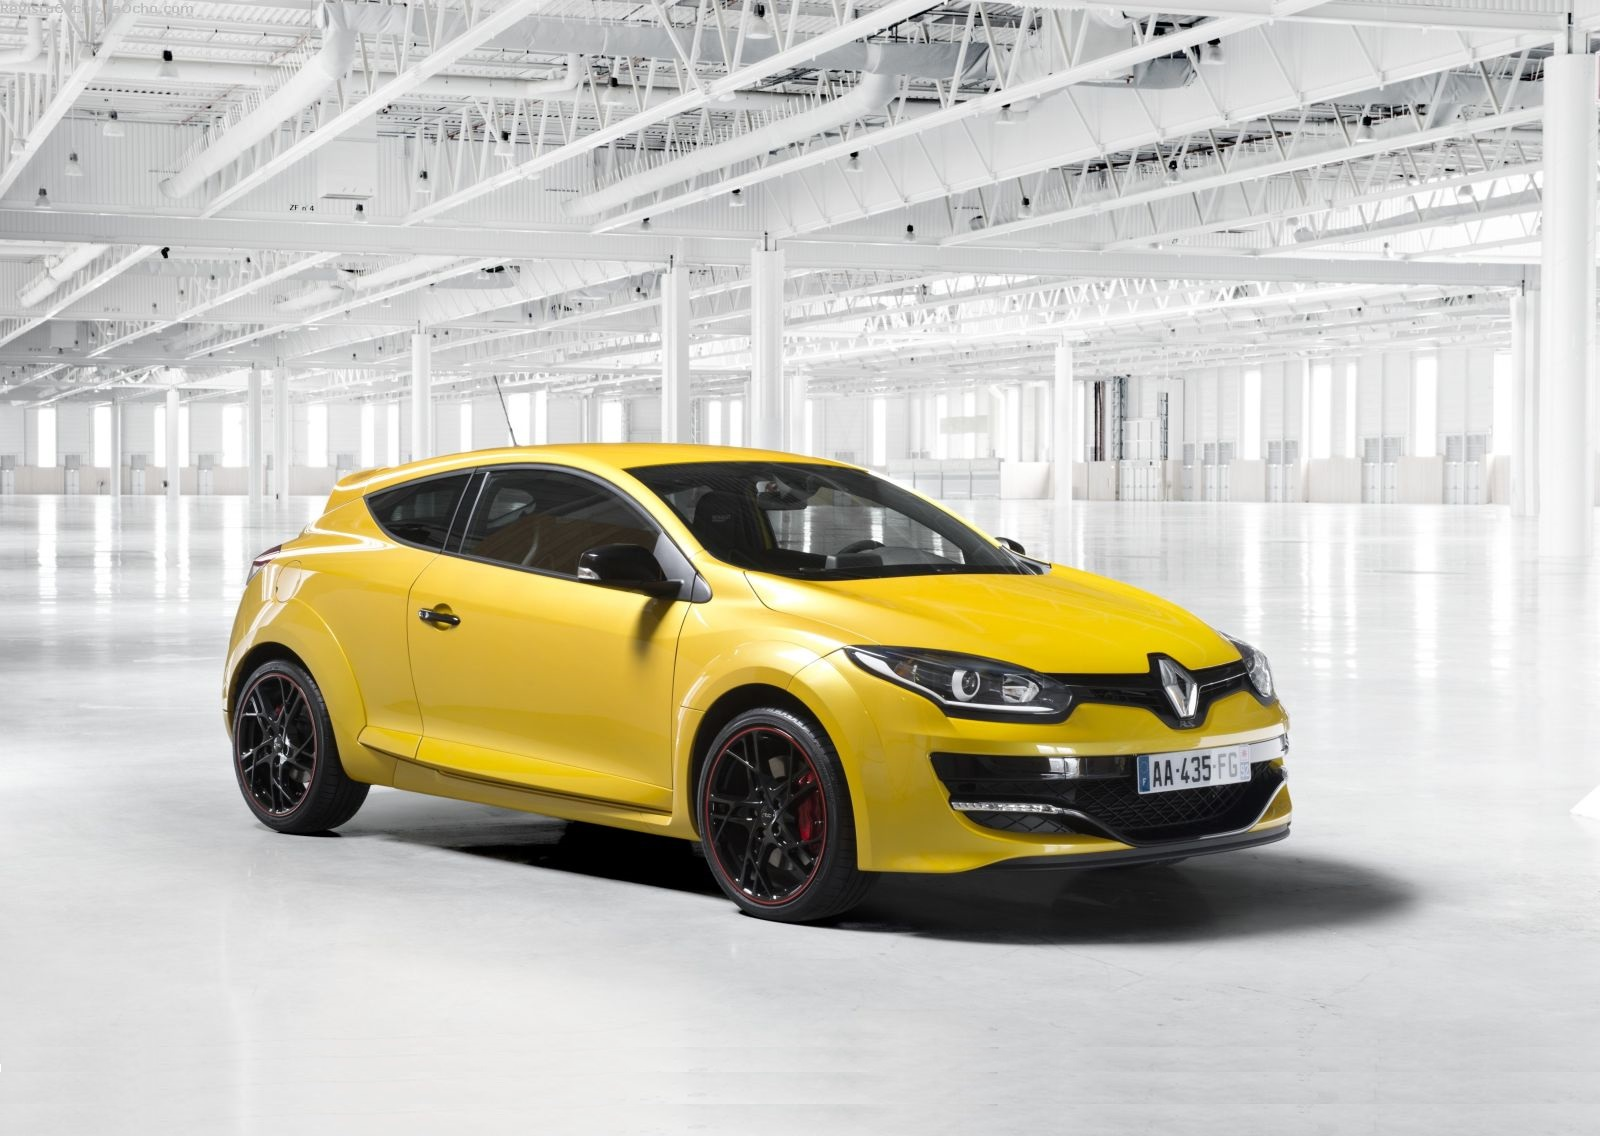 renault megane rs coupe specs 2014 2015 2016 2017 2018 autoevolution. Black Bedroom Furniture Sets. Home Design Ideas